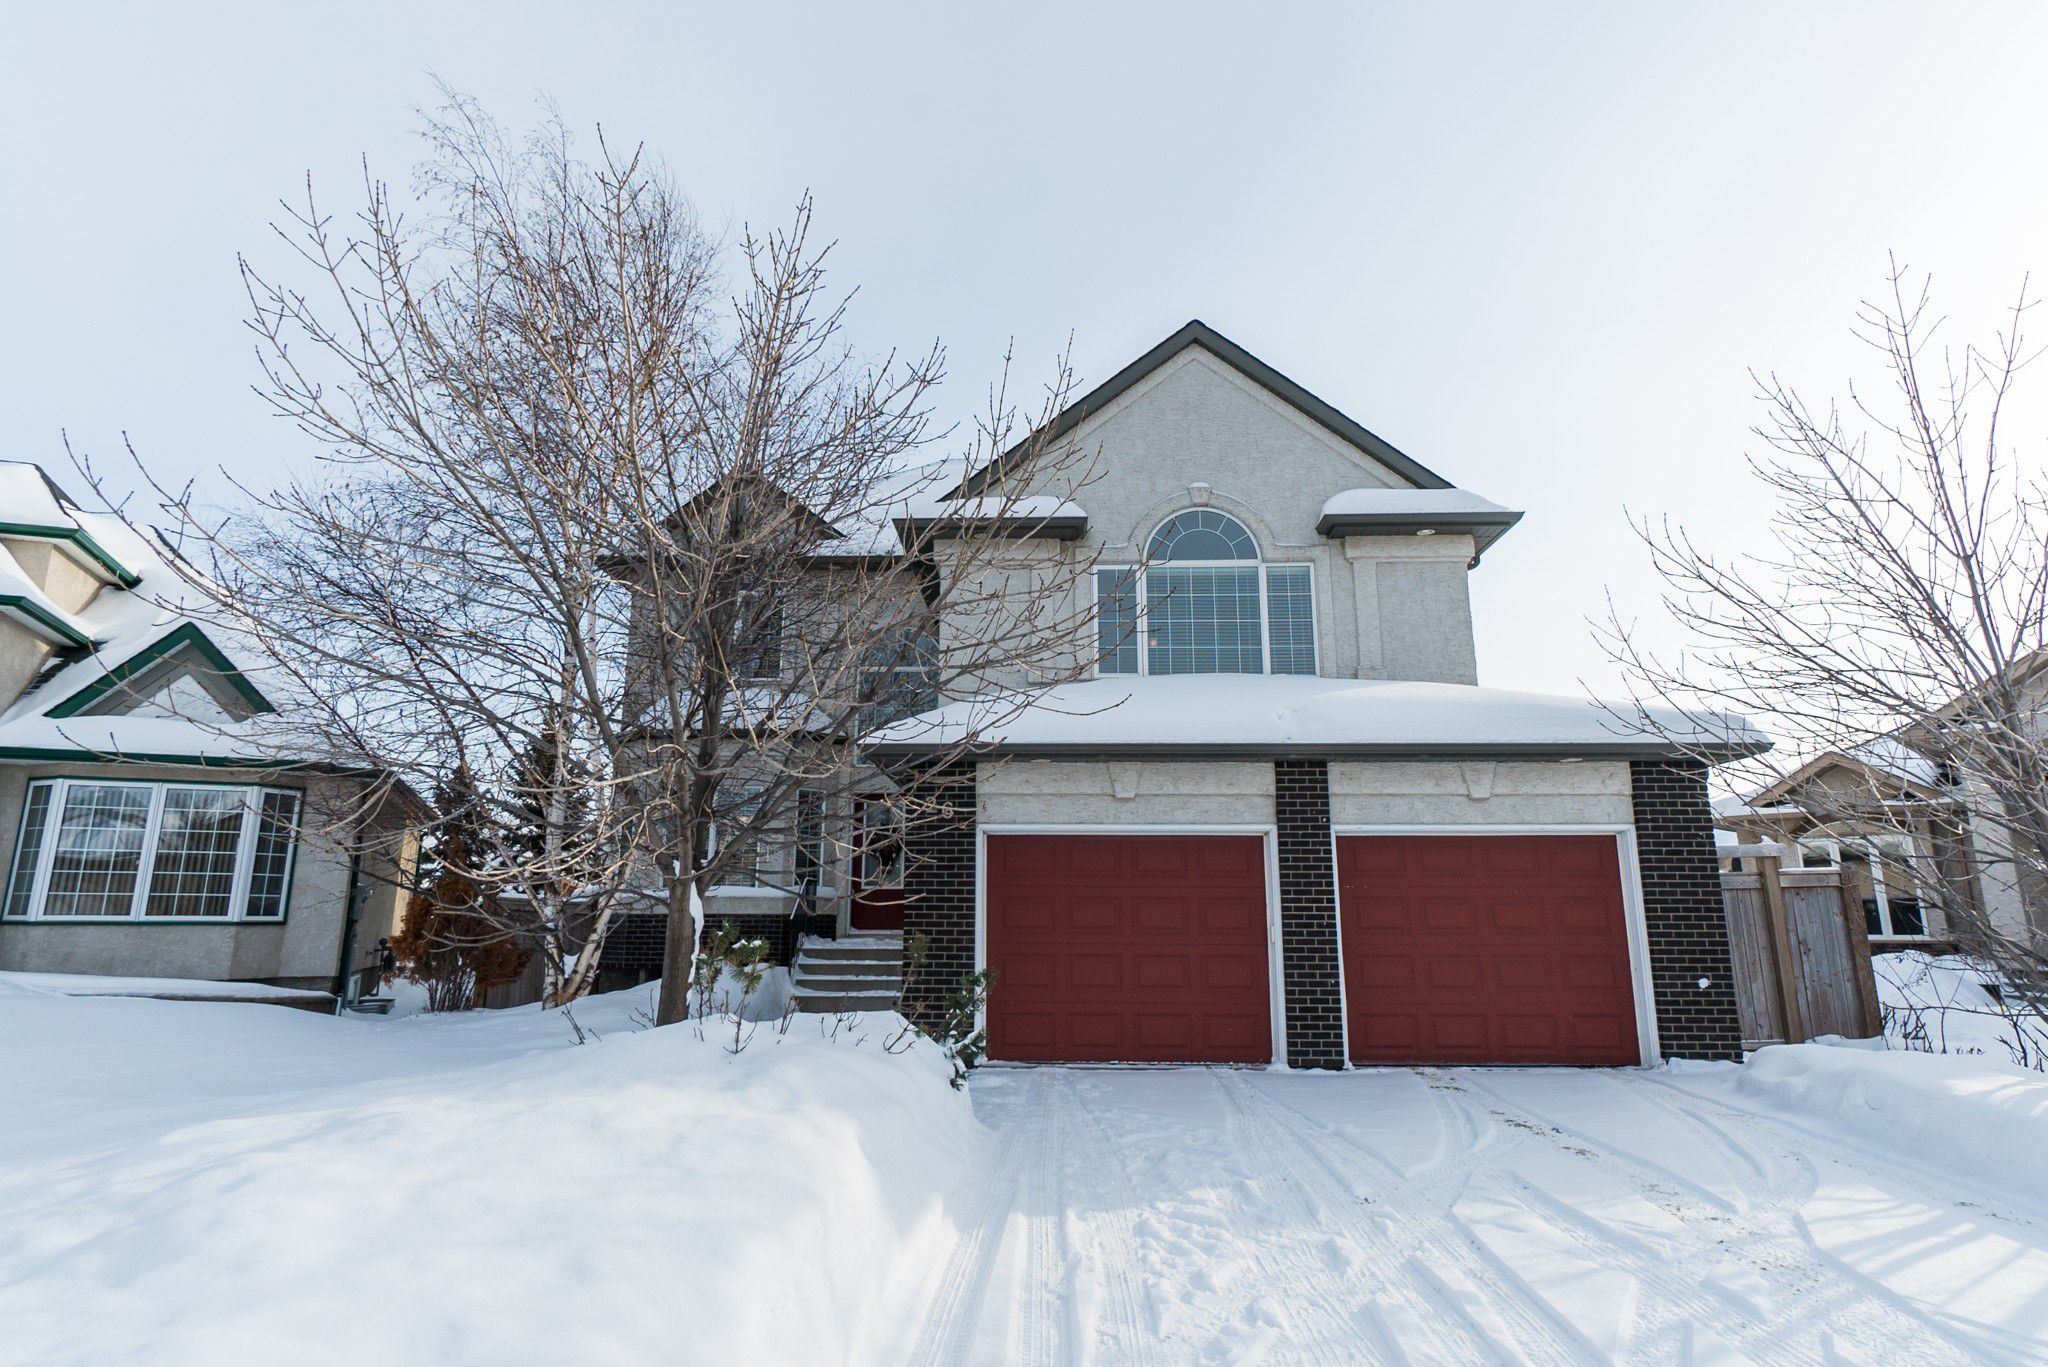 Main Photo: 26 Laurel Ridge Drive in Winnipeg: Linden Ridge Residential for sale (1M)  : MLS®# 1903674